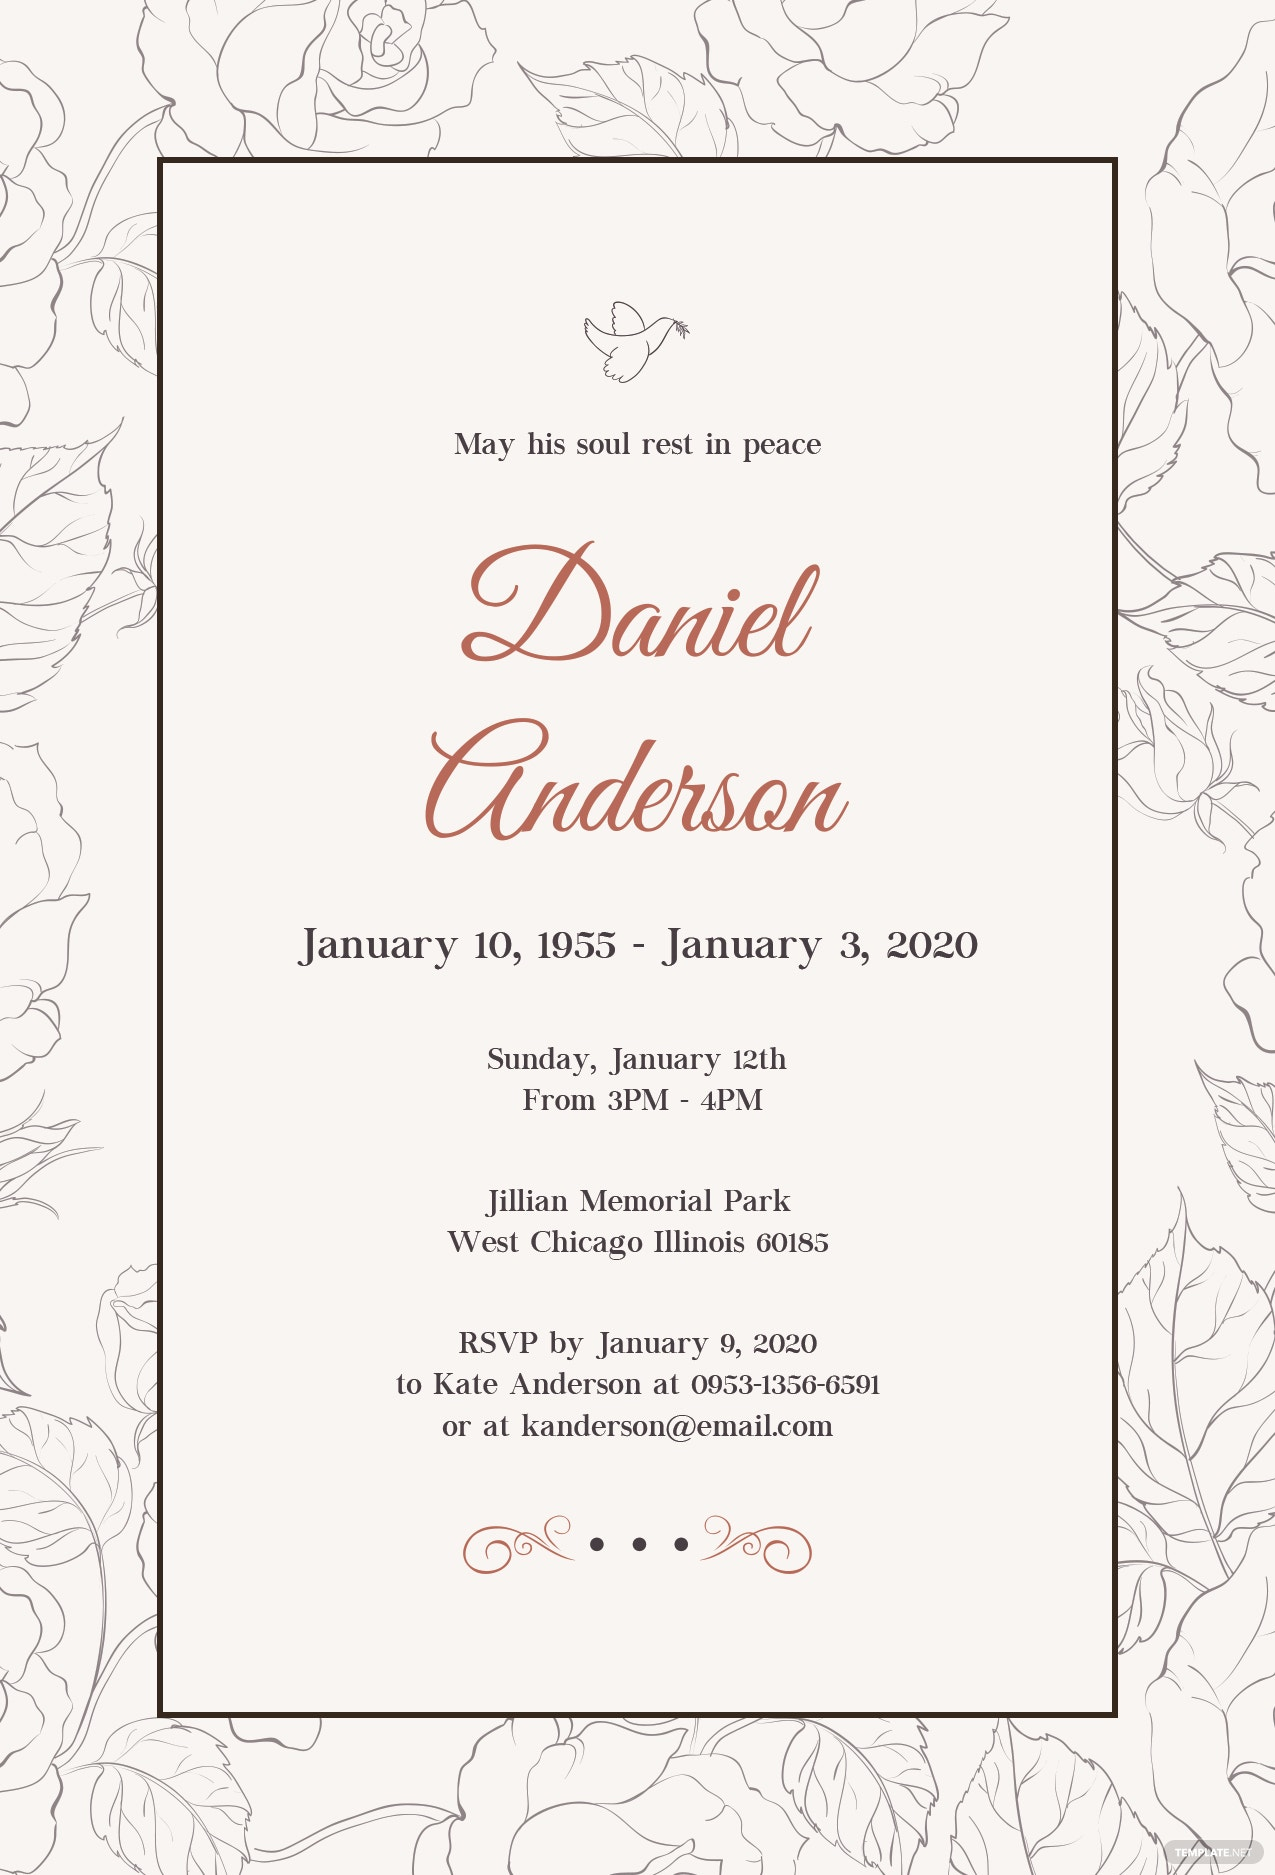 memorial celebration of life tree 425x55 paper funeral invitation ...